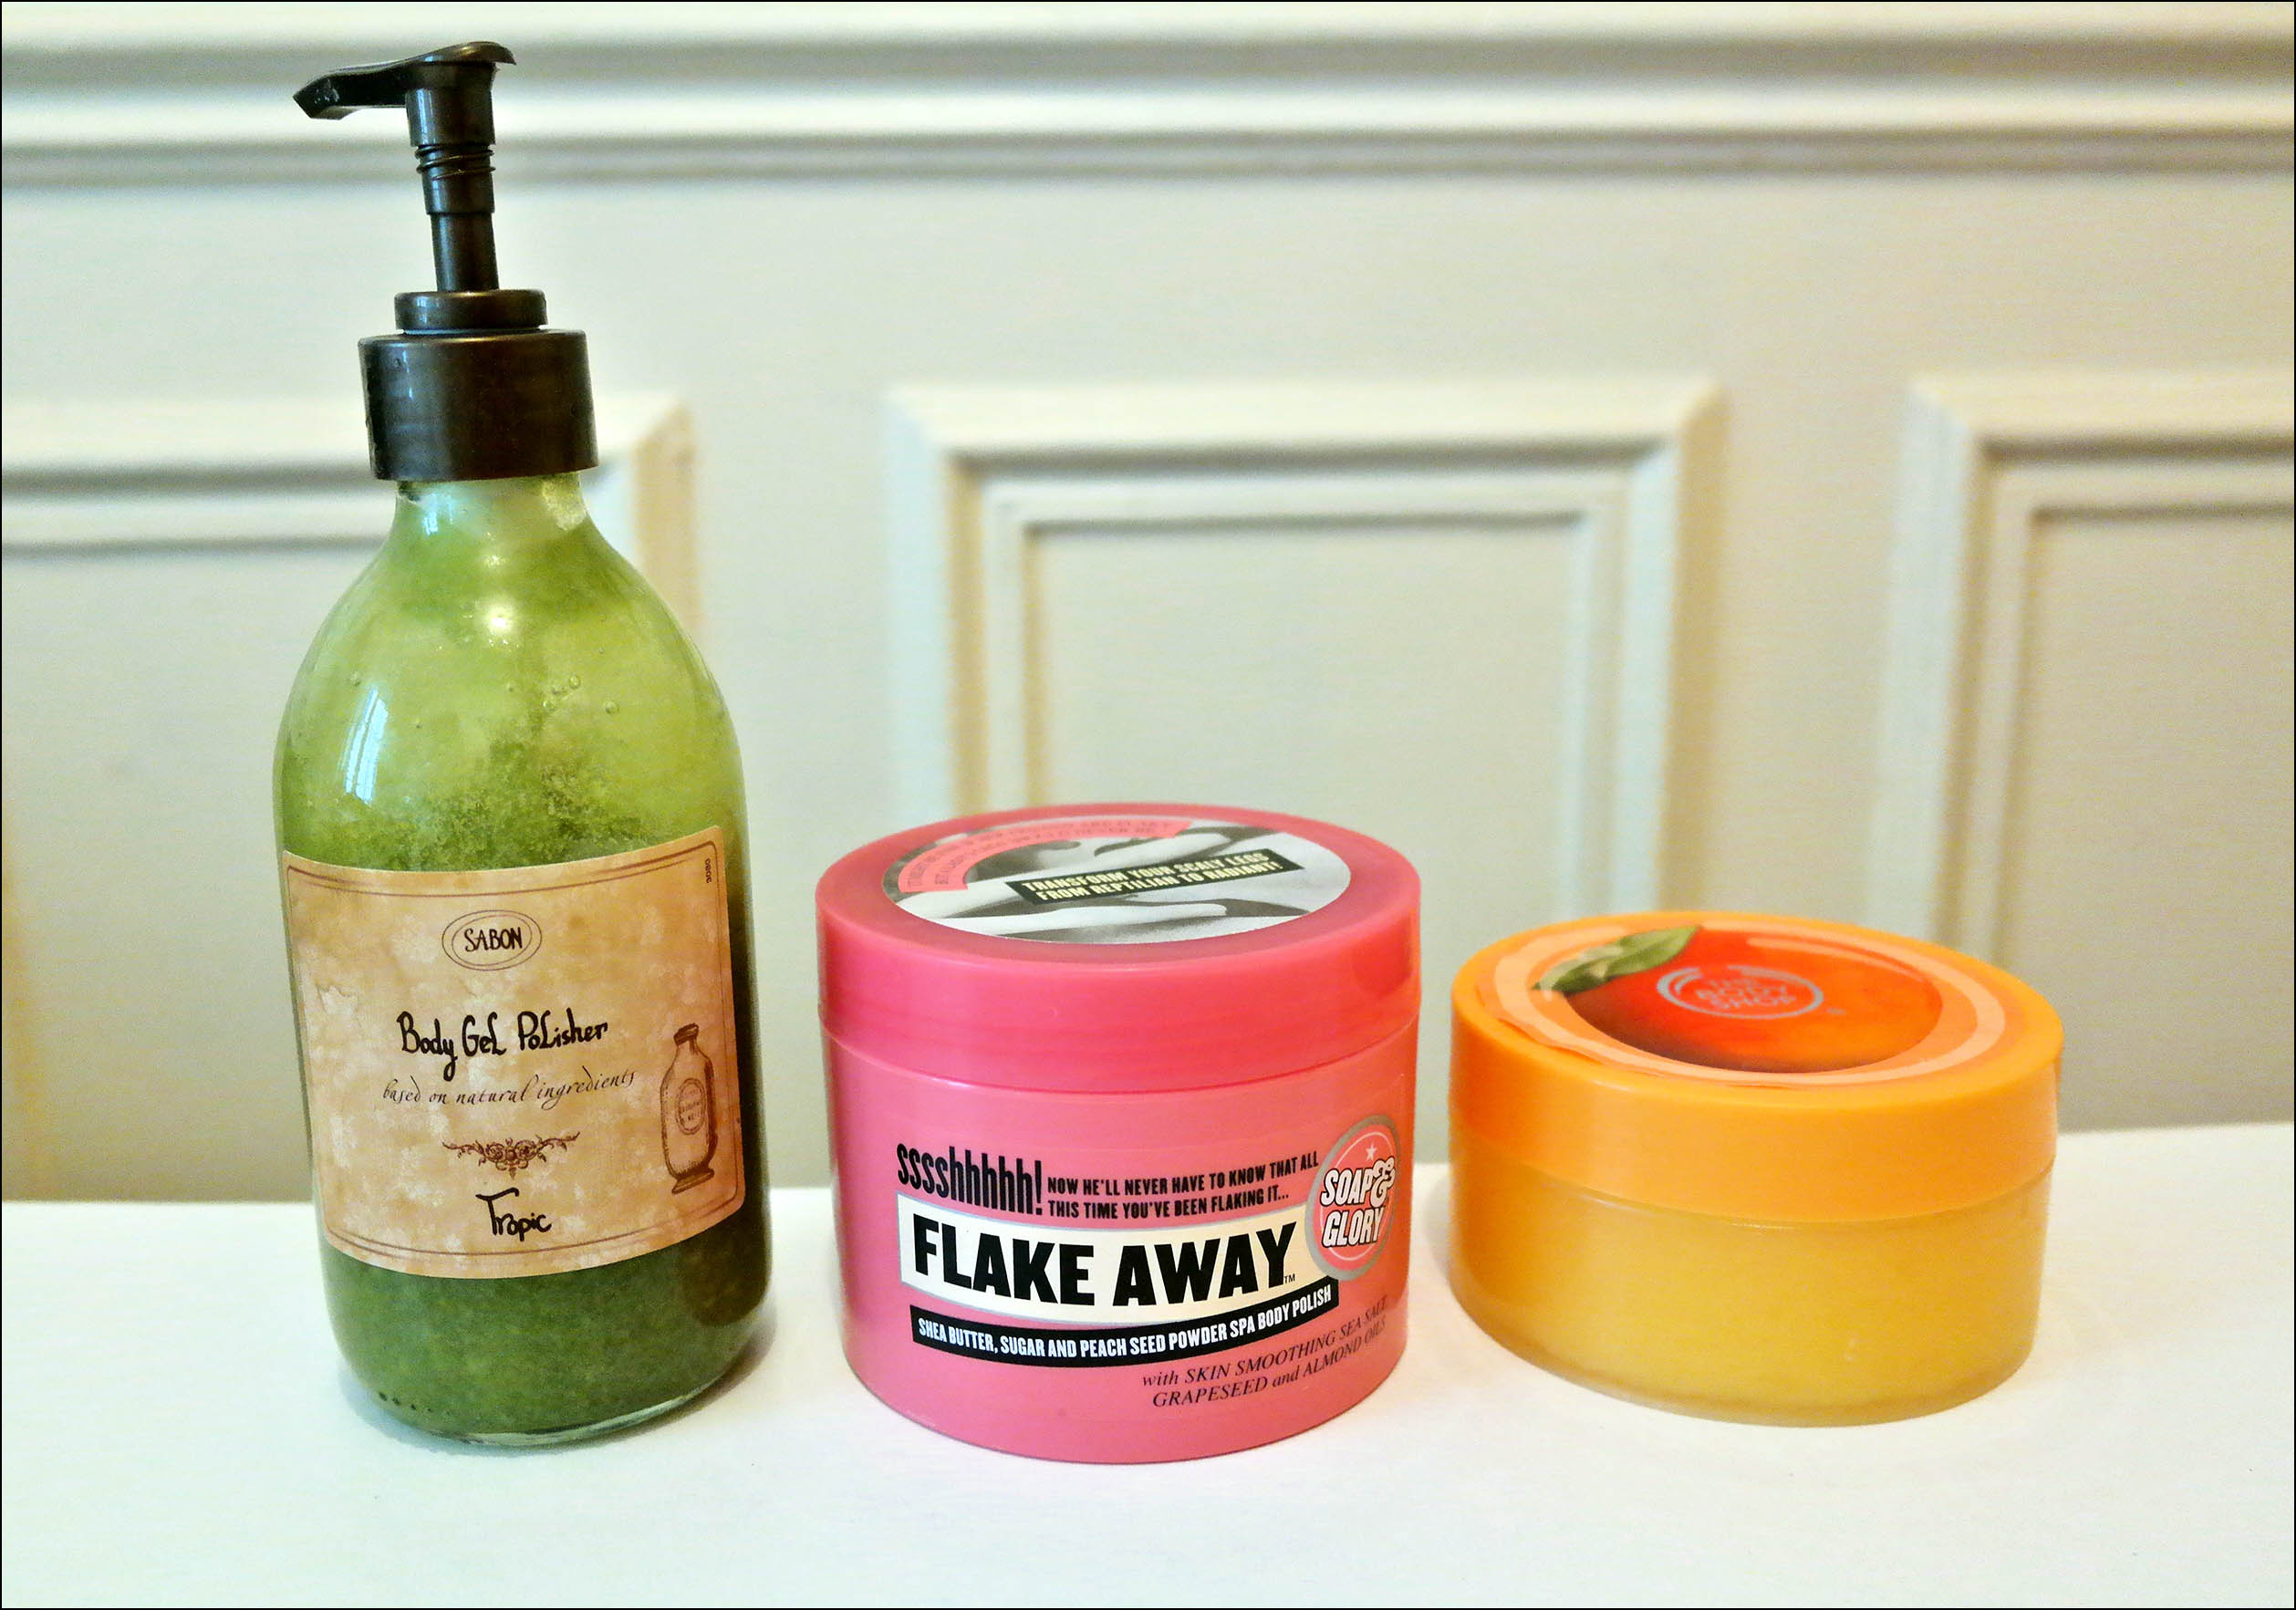 gommage, gommages corps, soap and glory, the body shop, sabon